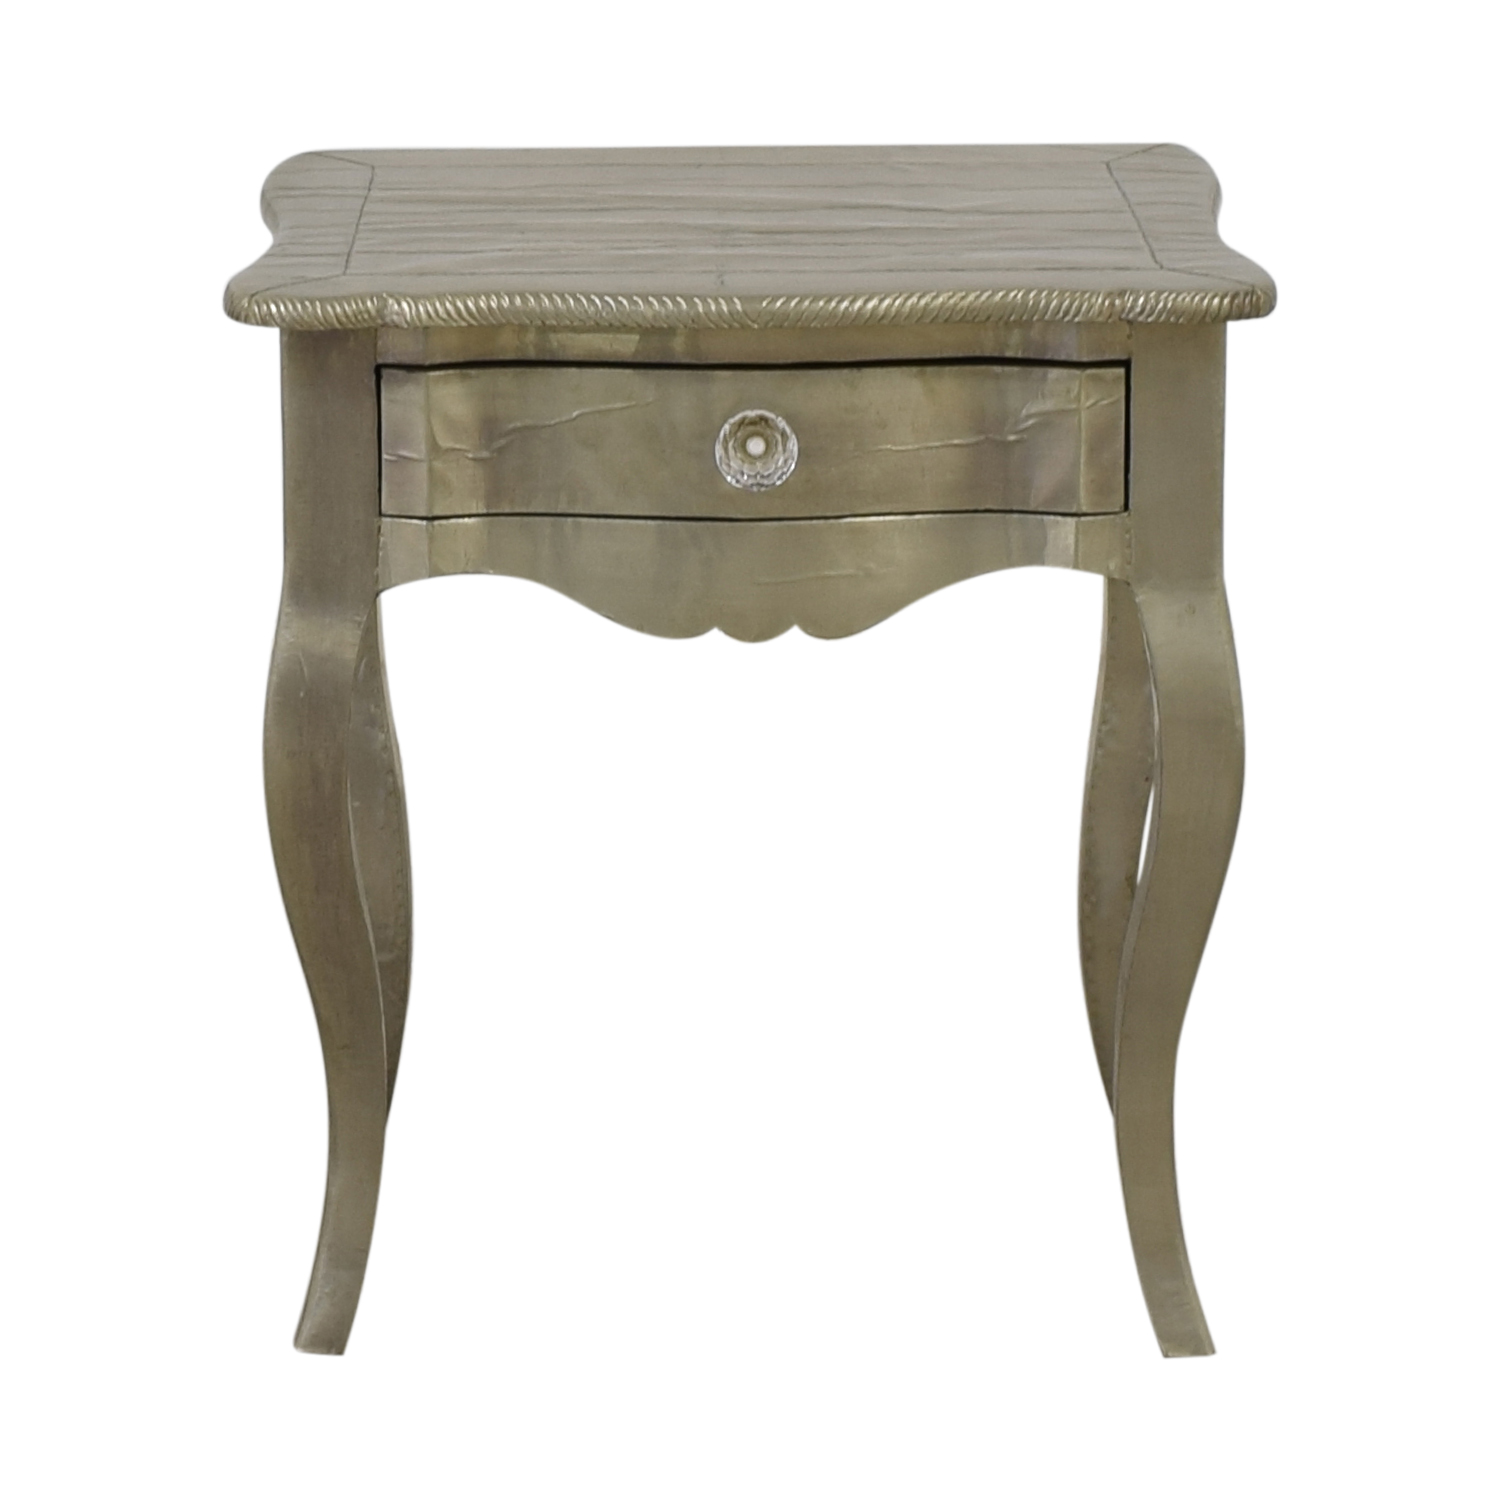 shop ABC Carpet & Home ABC Carpet & Home Wood Silver Leaf Bedside Table online